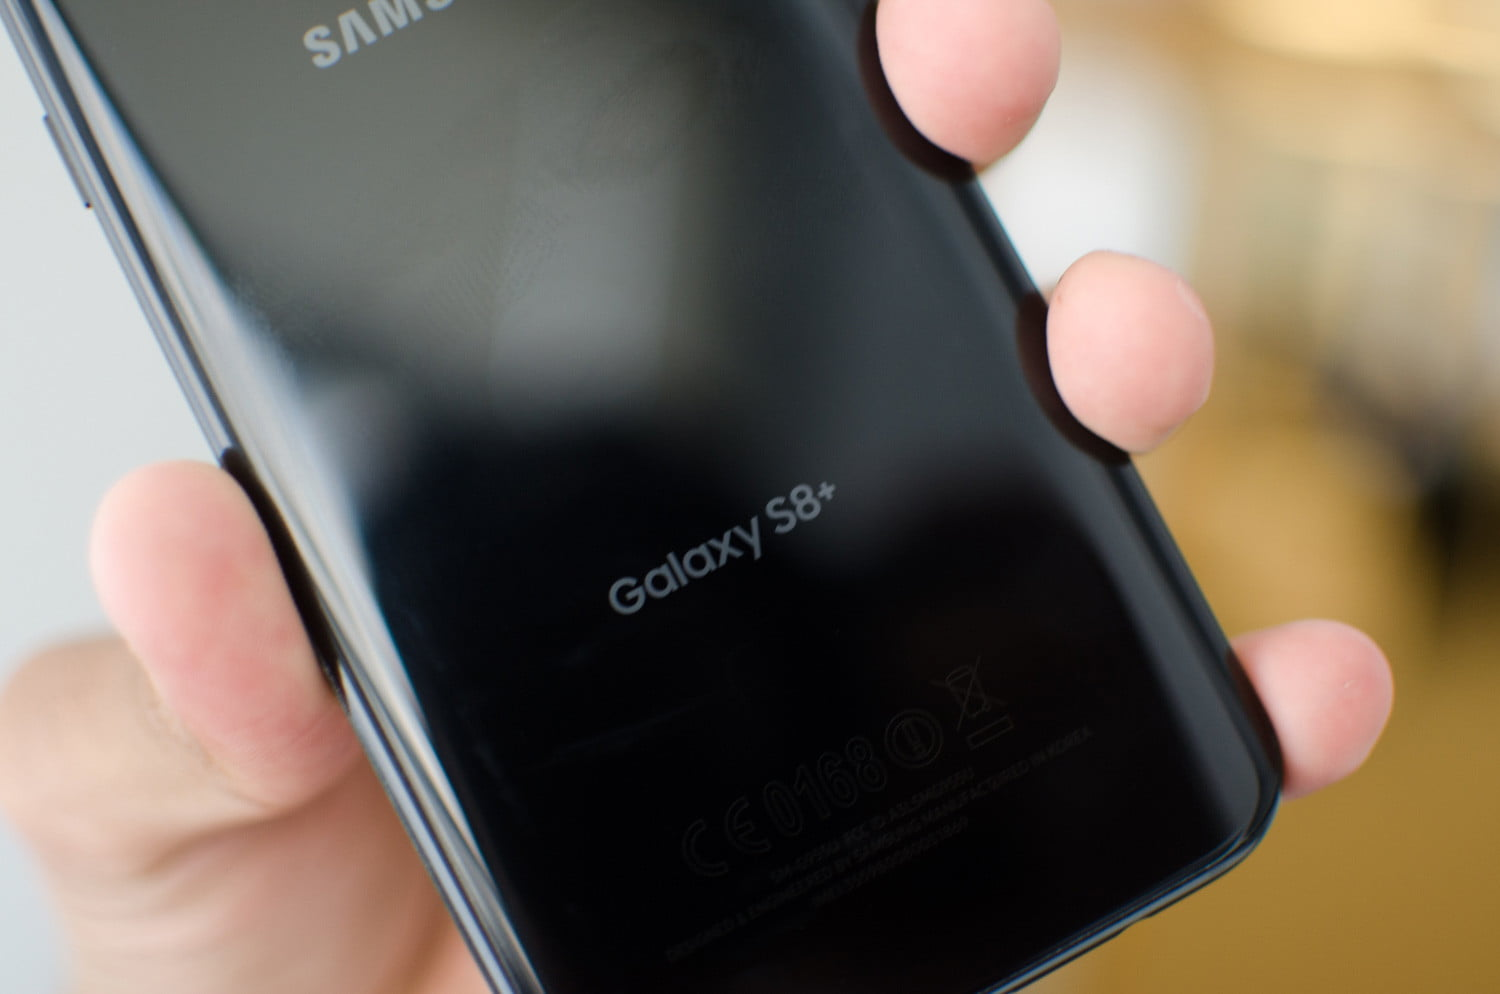 Samsung Galaxy S8 Review   Digital Trends